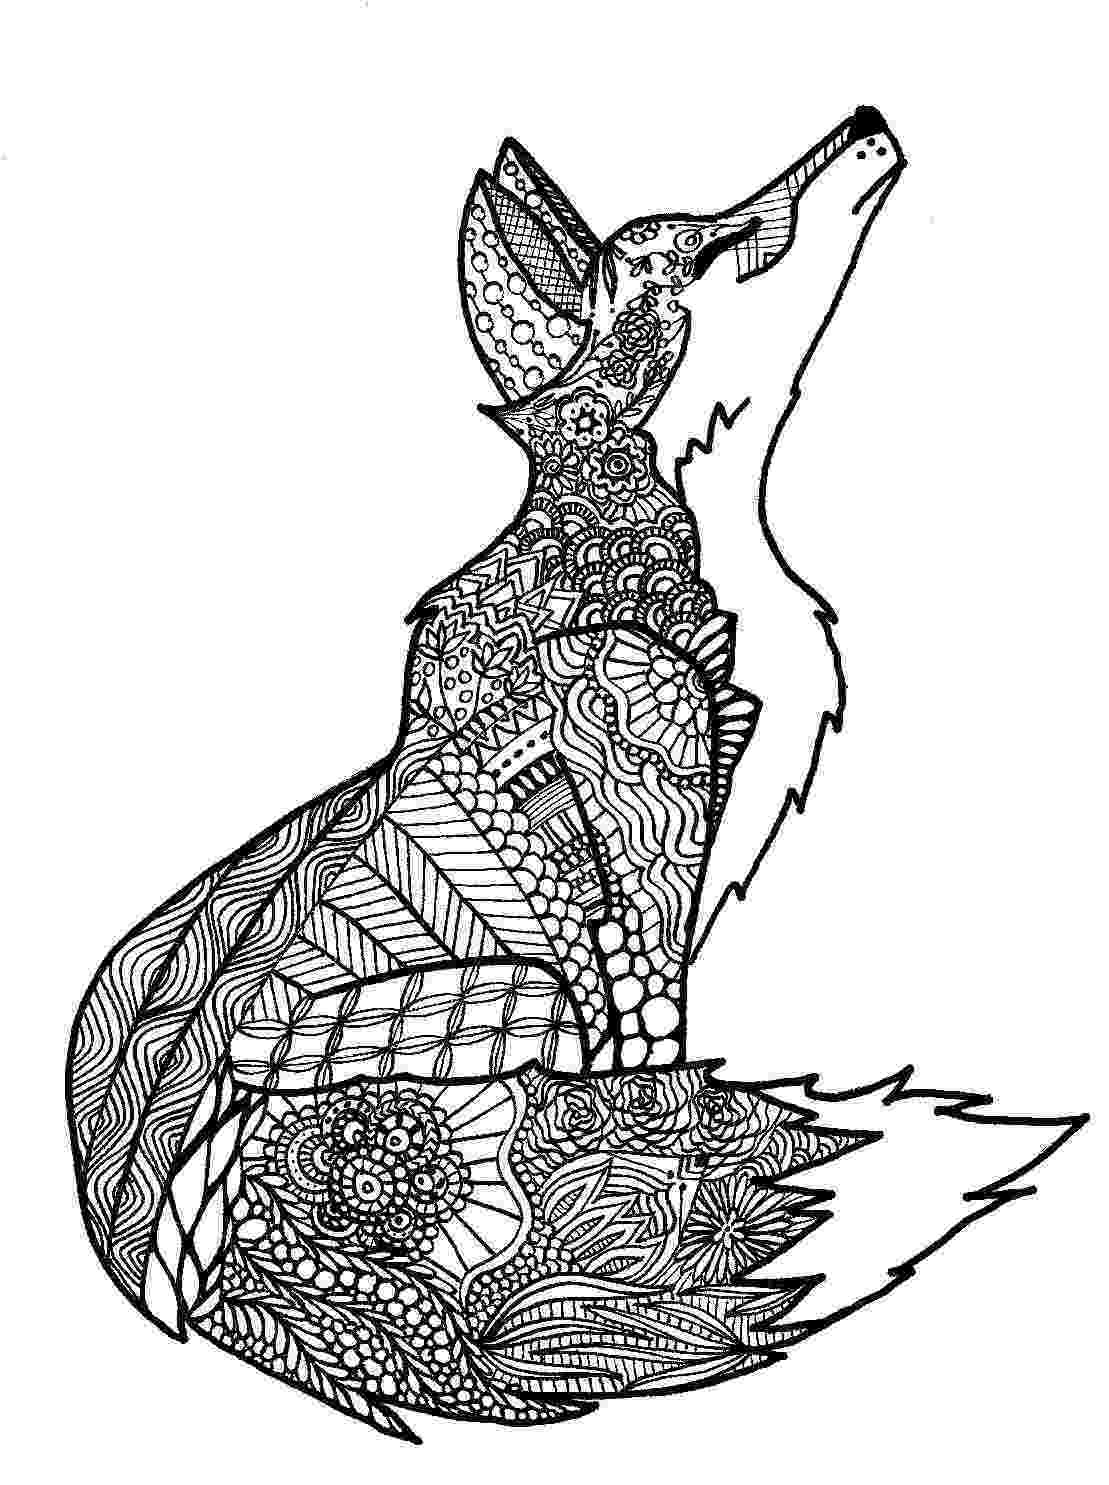 animal patterns colouring pages animals pattern pattern animals pinterest animal pages patterns animal colouring